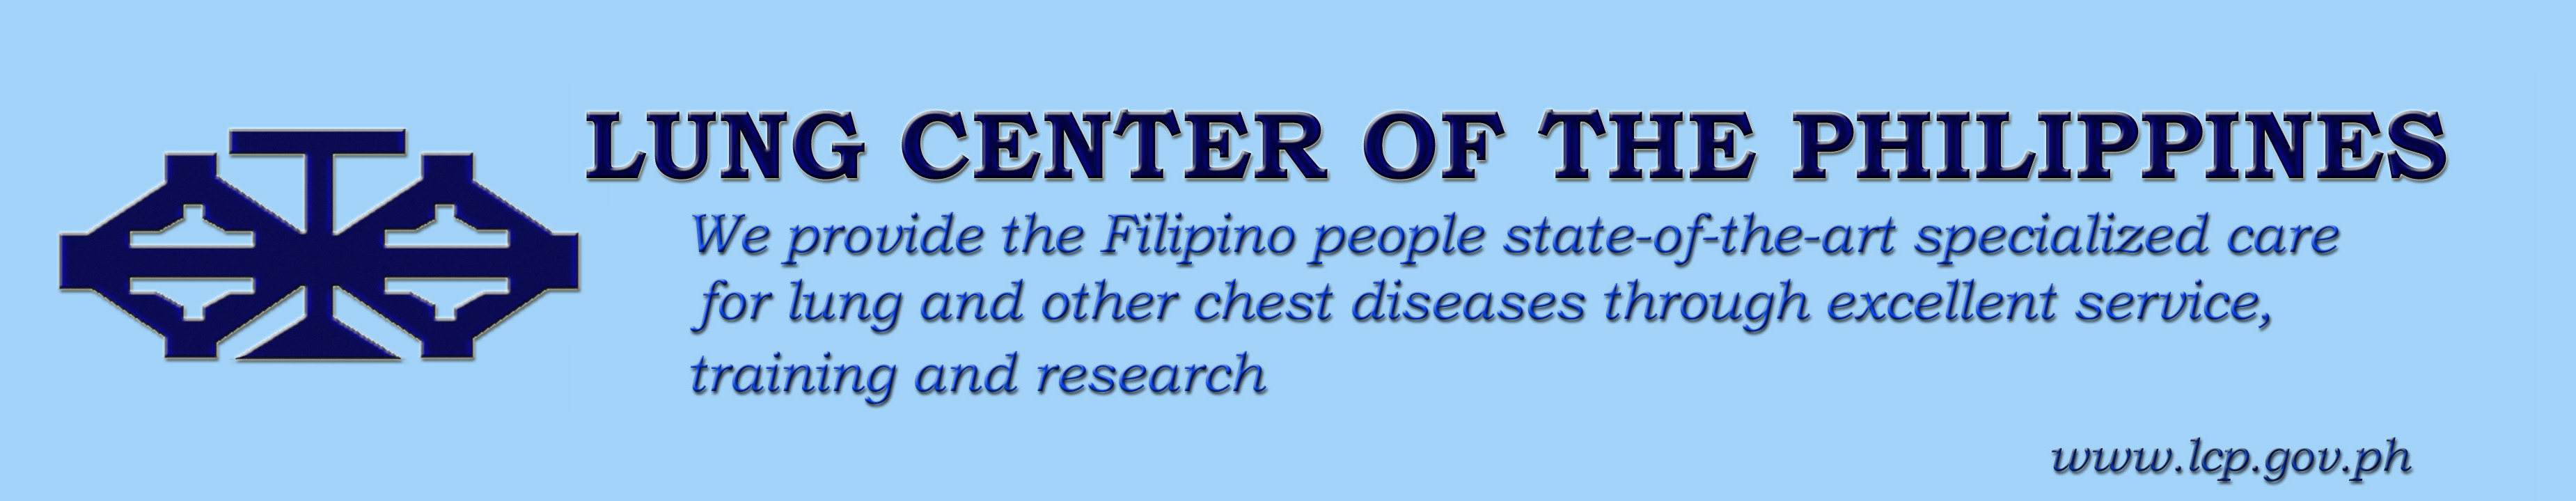 Lung Center of the Philippines - Room No. 1108